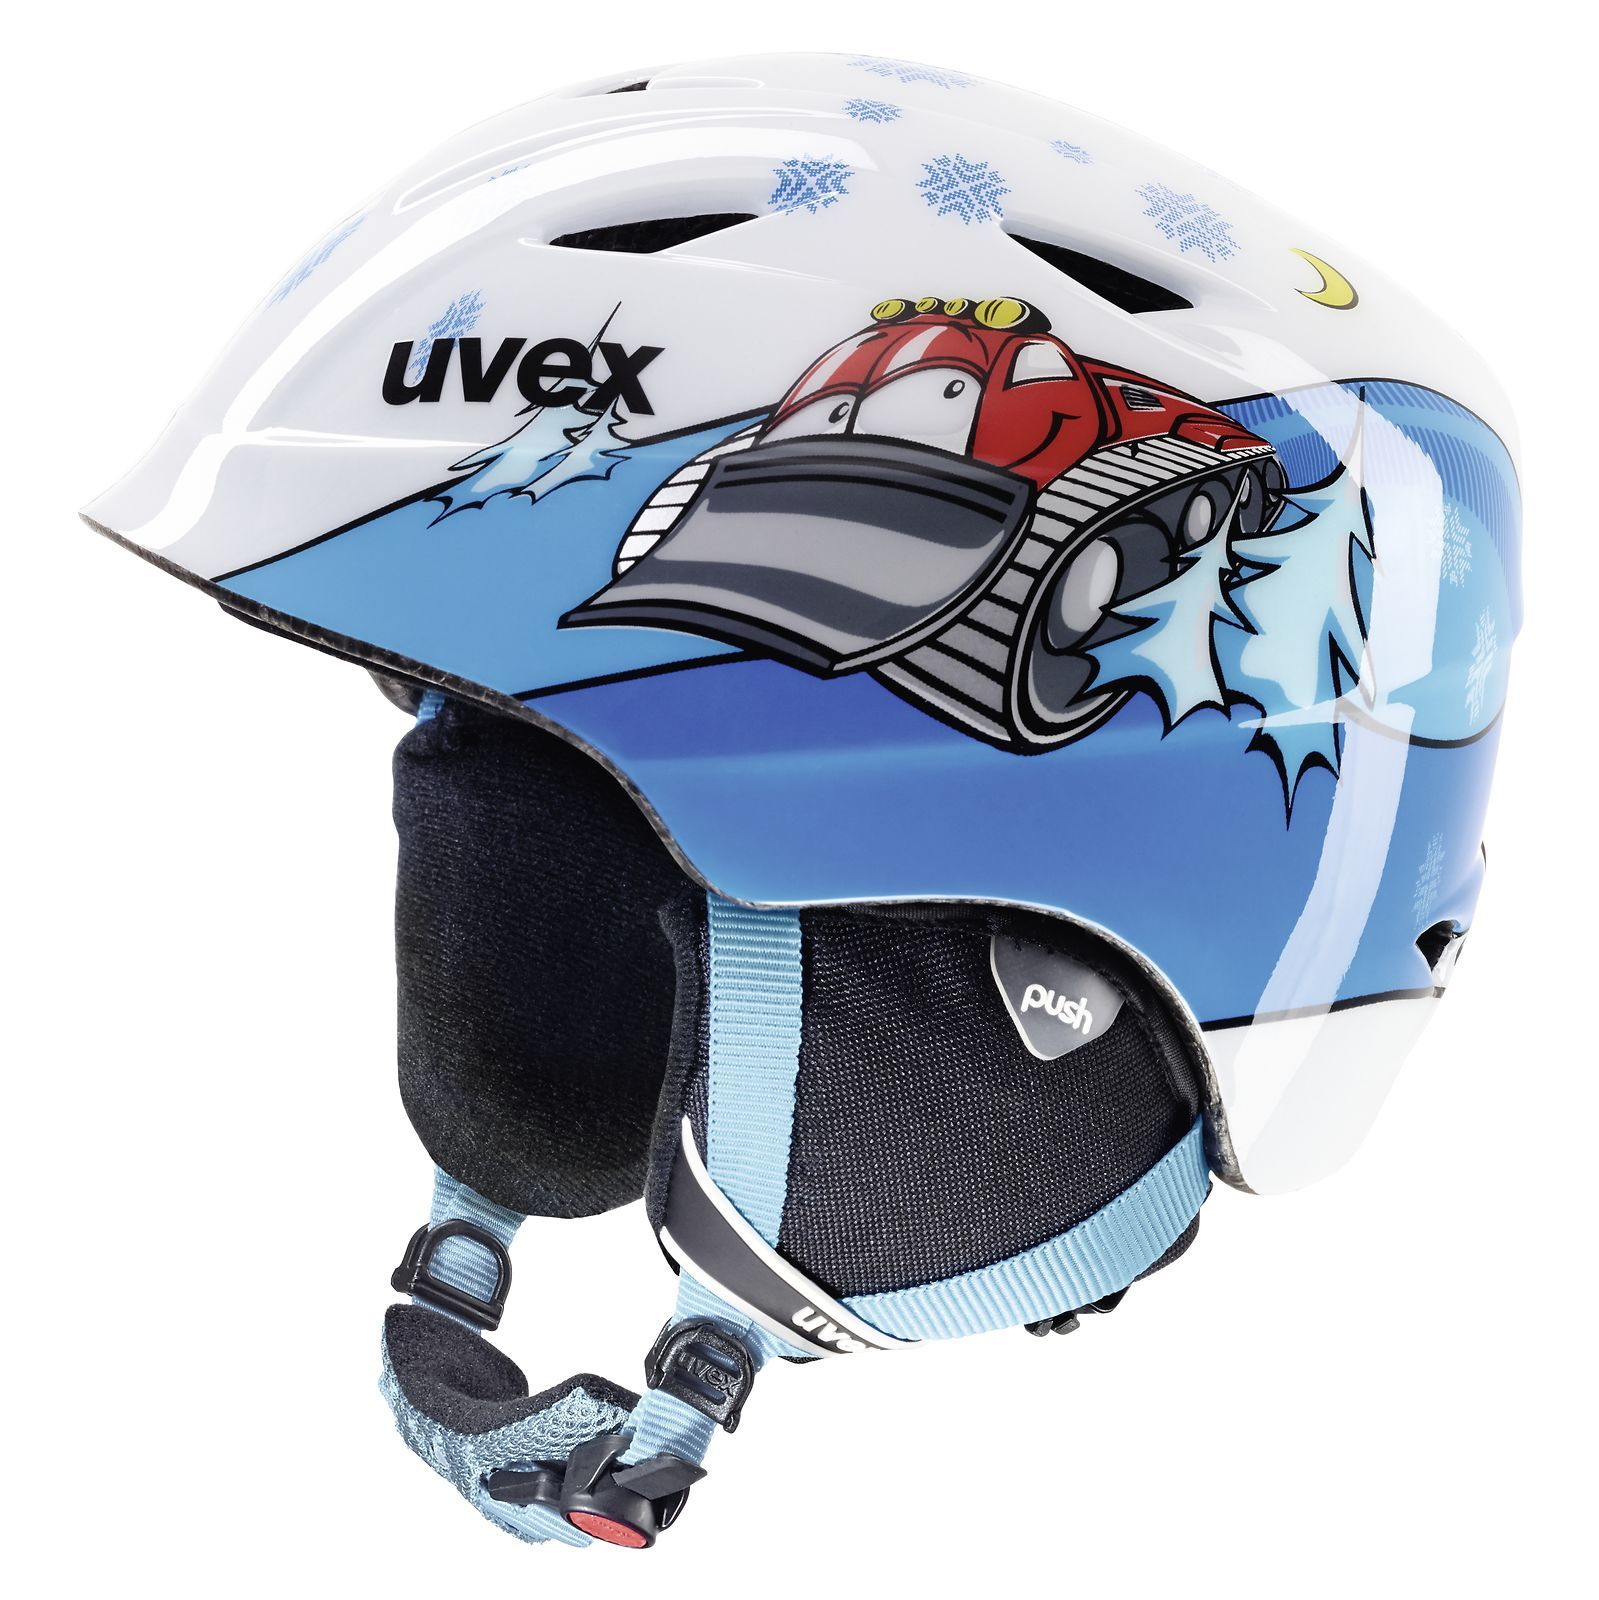 Kask Uvex Airwing 2 566132